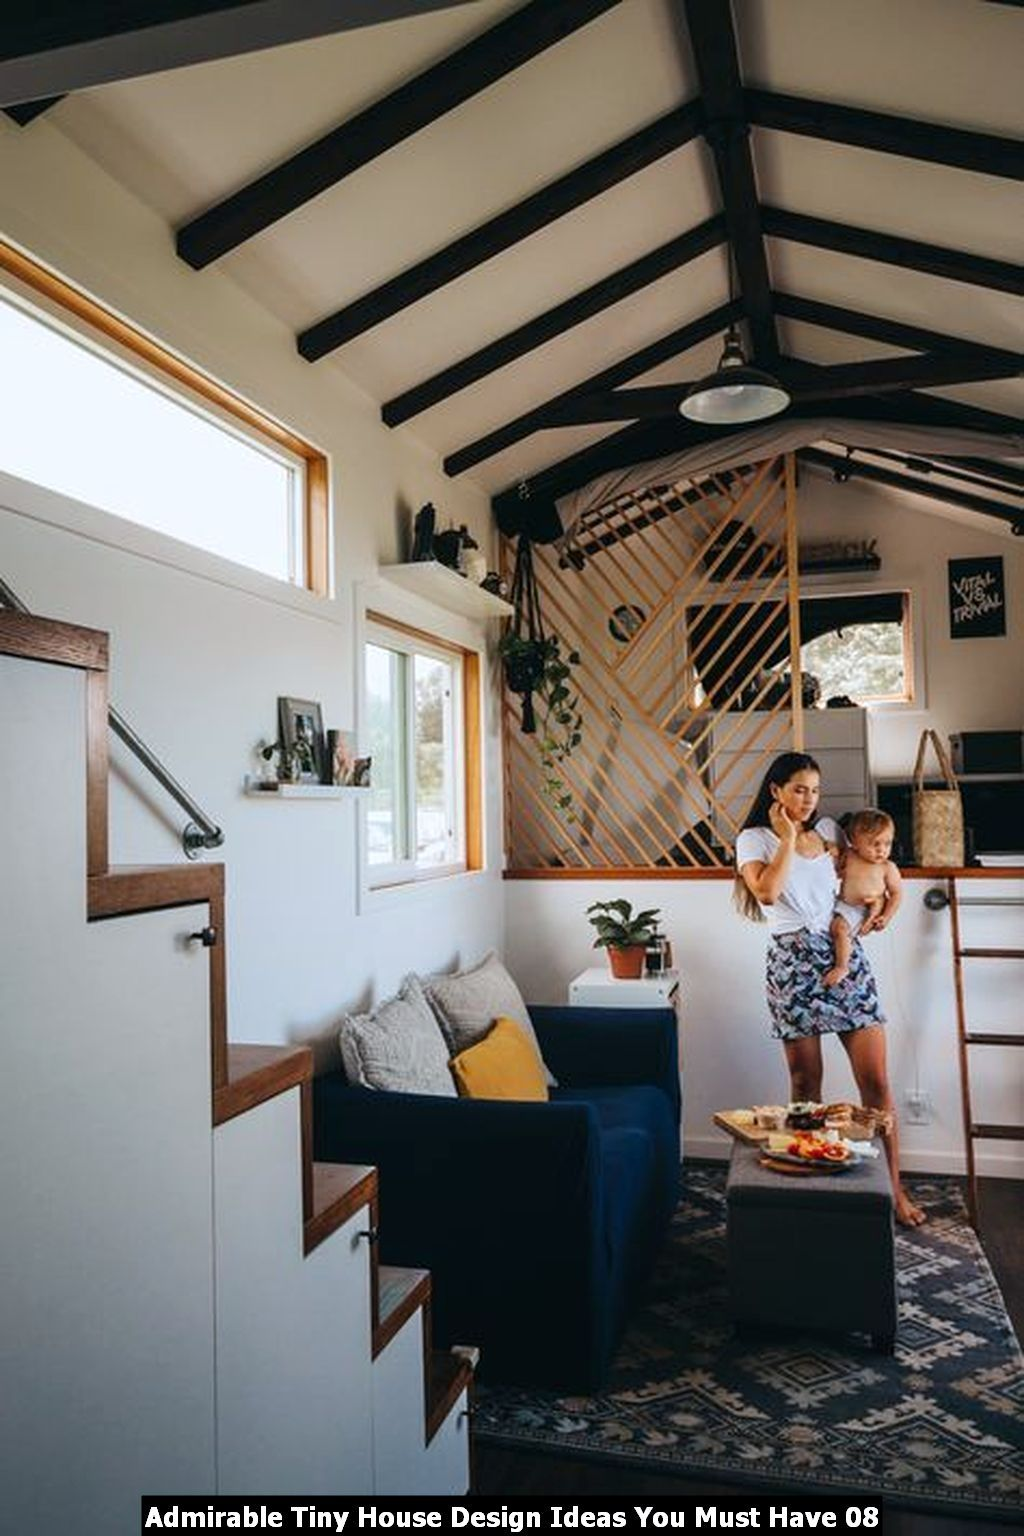 Admirable Tiny House Design Ideas You Must Have Tiny House Interior Off Grid Tiny House Tiny House Interior Design